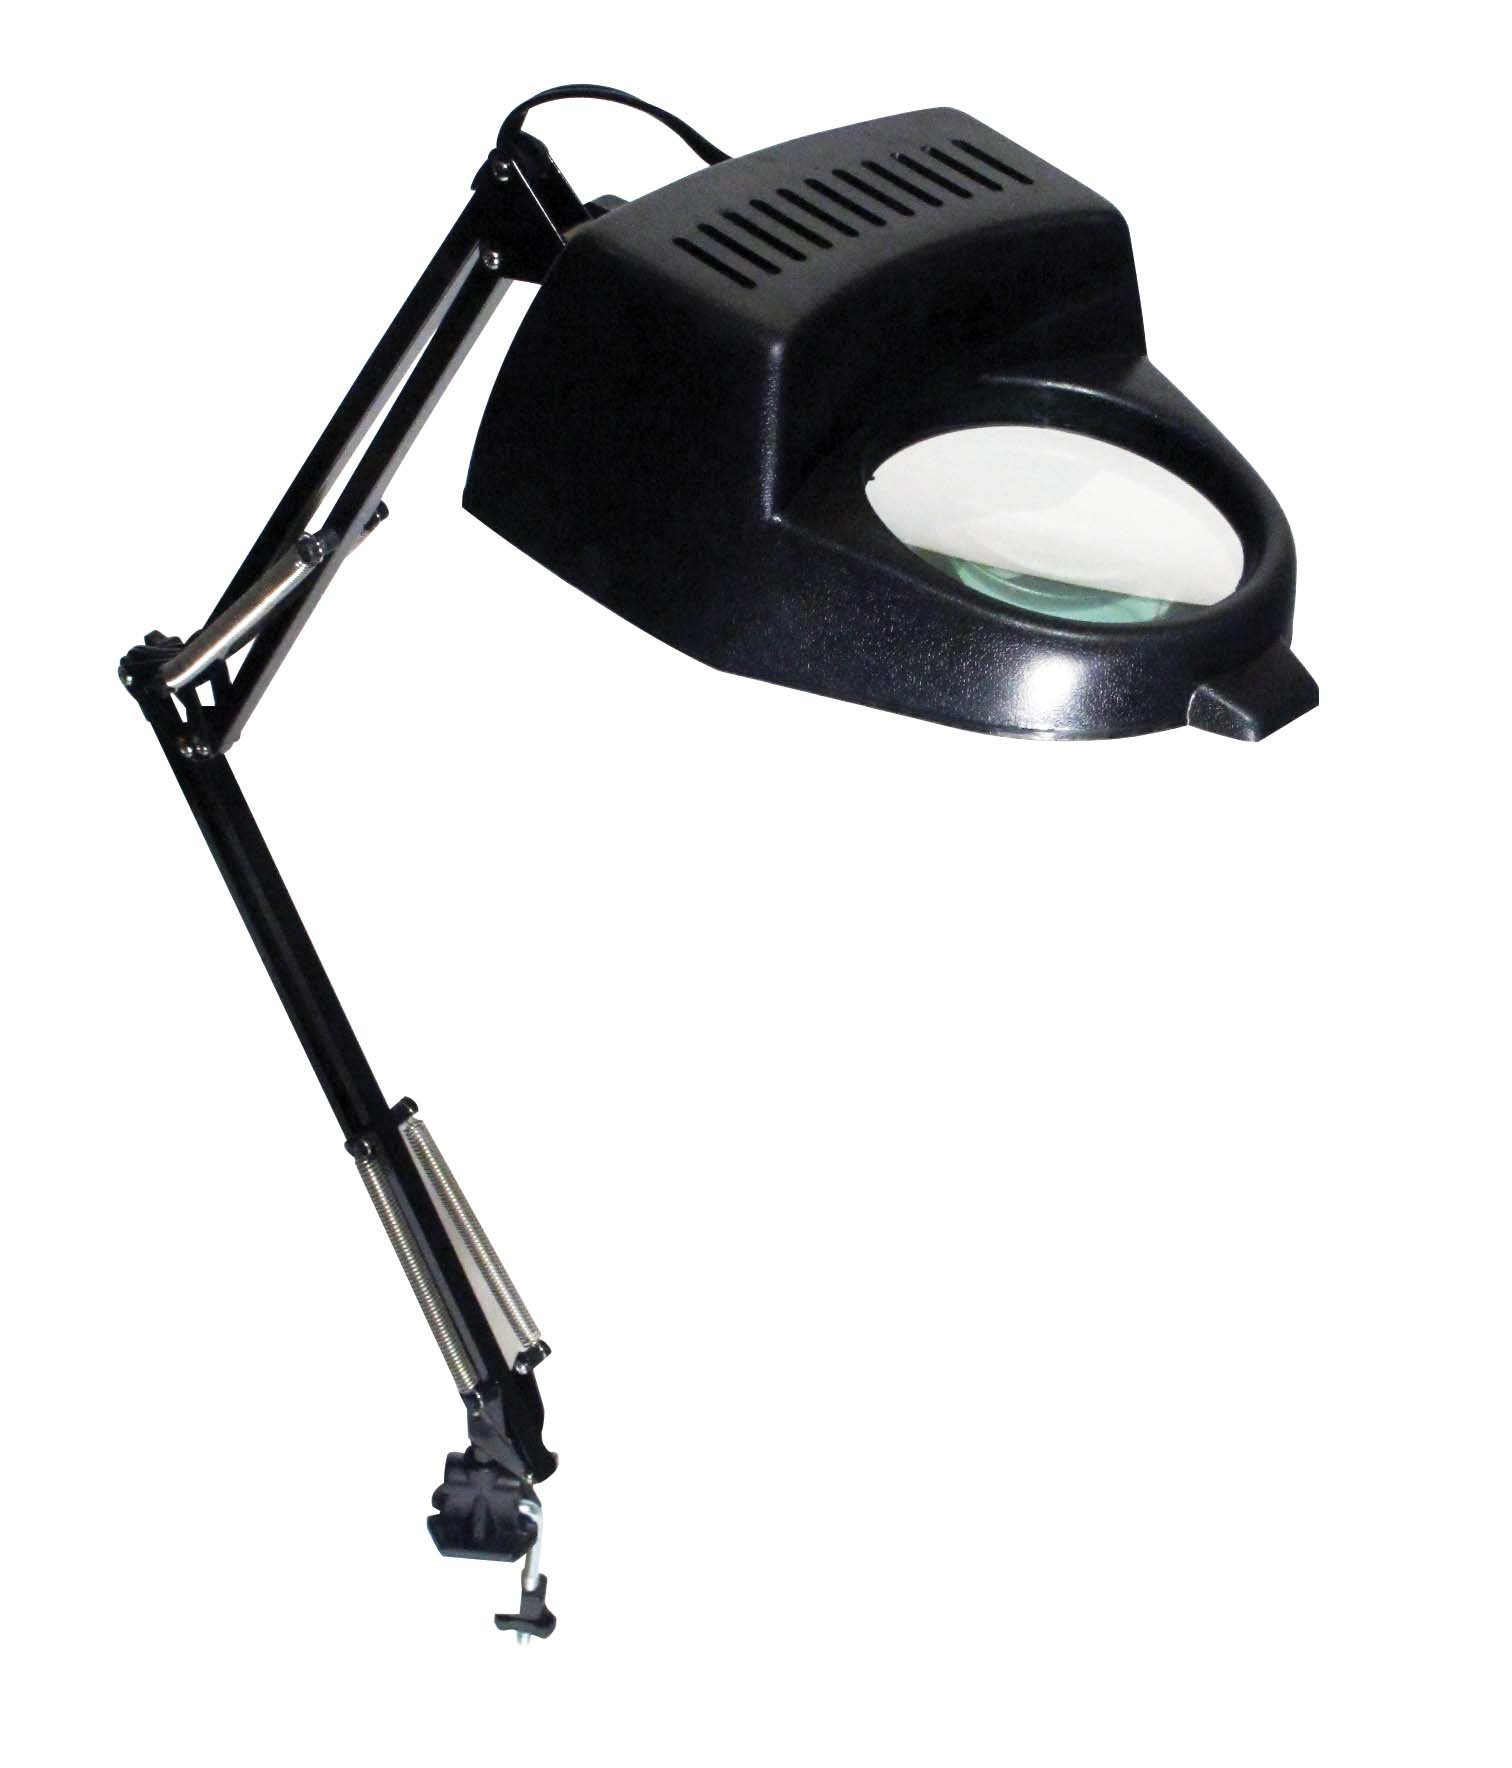 new swing arm jeweler crafting clamp on desk lamp illuminated magnifier 0 ship. Black Bedroom Furniture Sets. Home Design Ideas